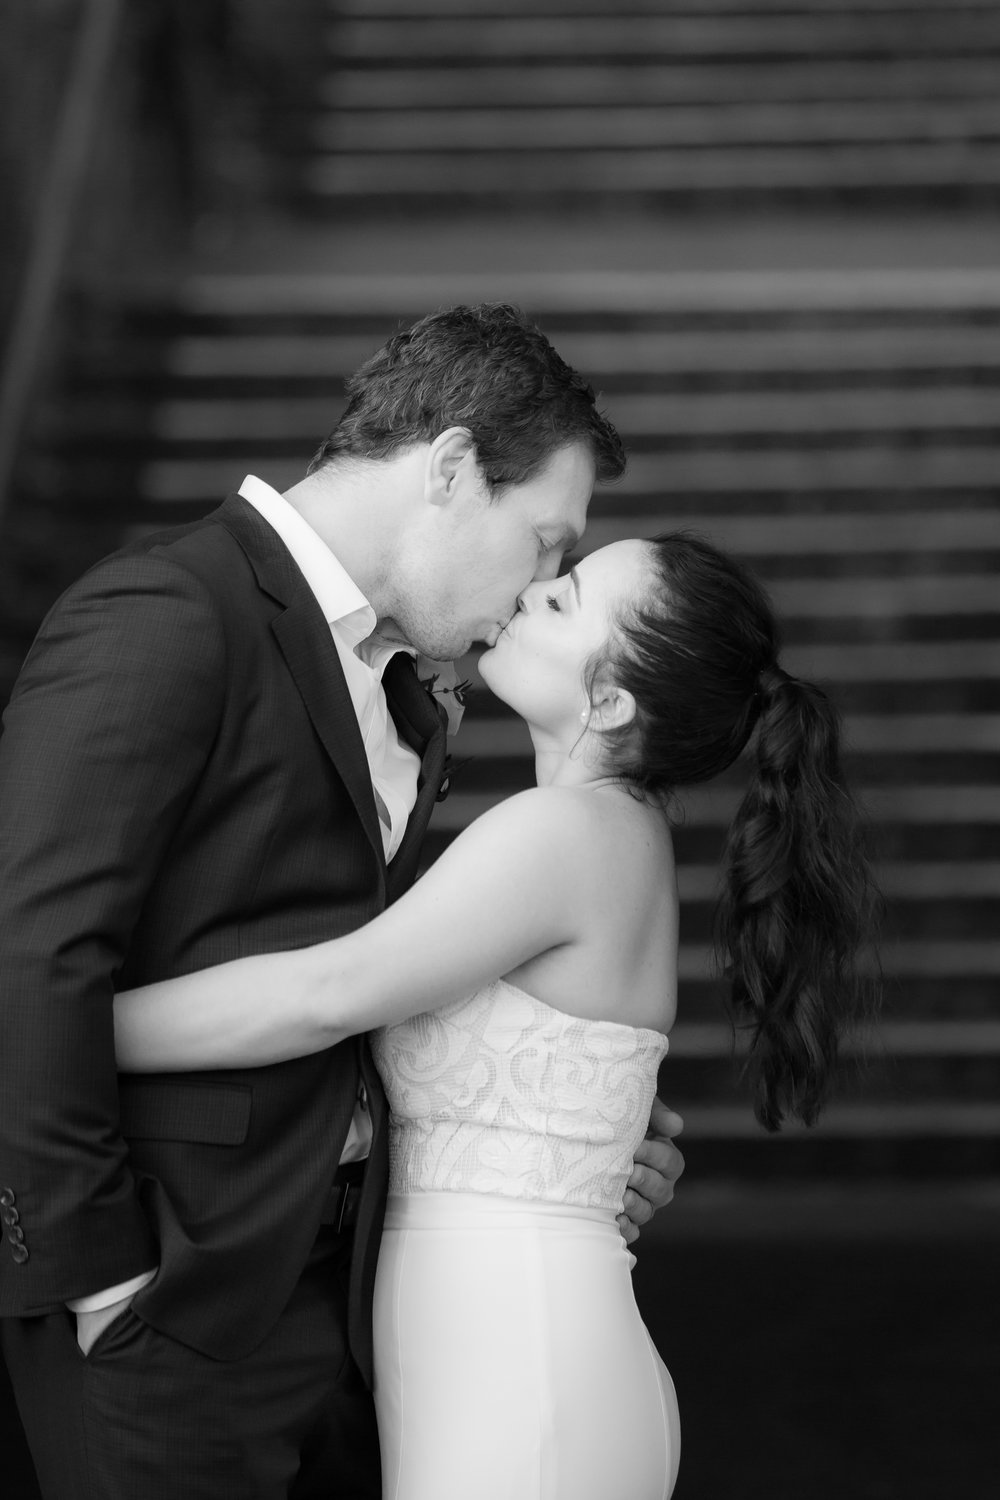 170922_Bright_Photography_Michelle&Rory-86.jpg